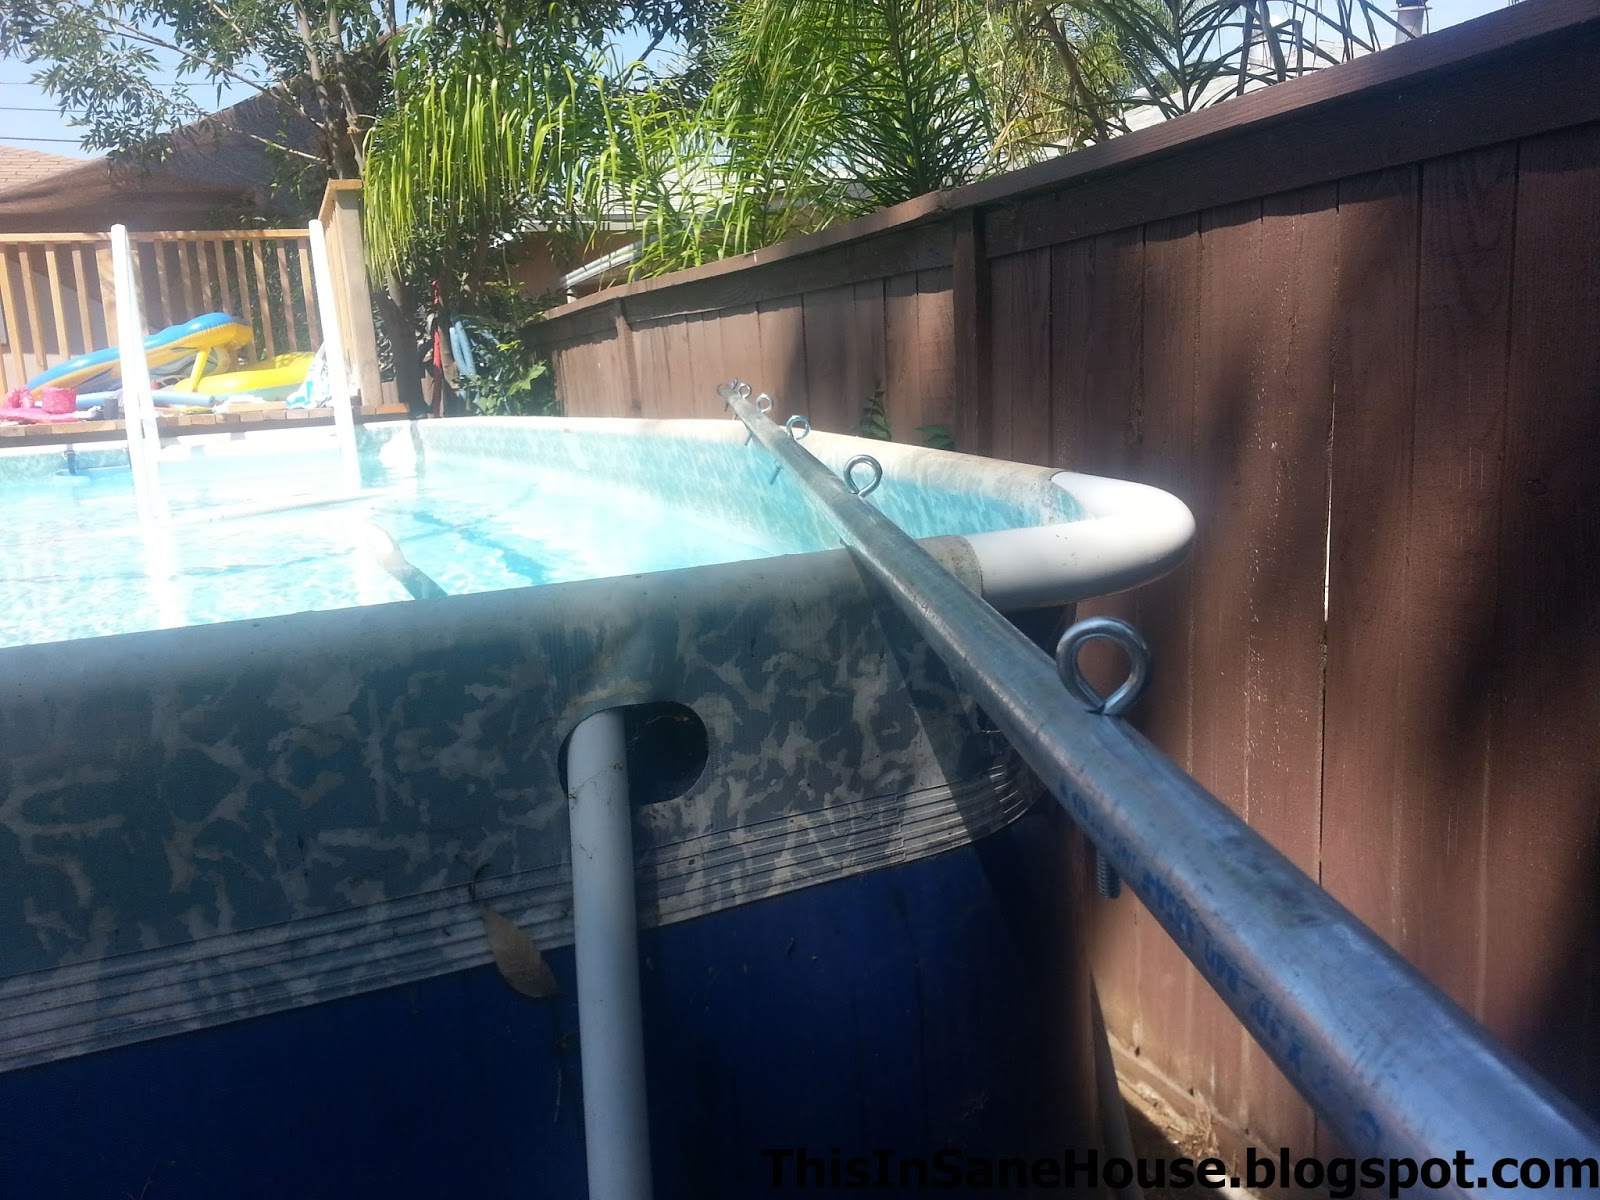 DIY: Solar Cover Reel for an Above Ground Pool